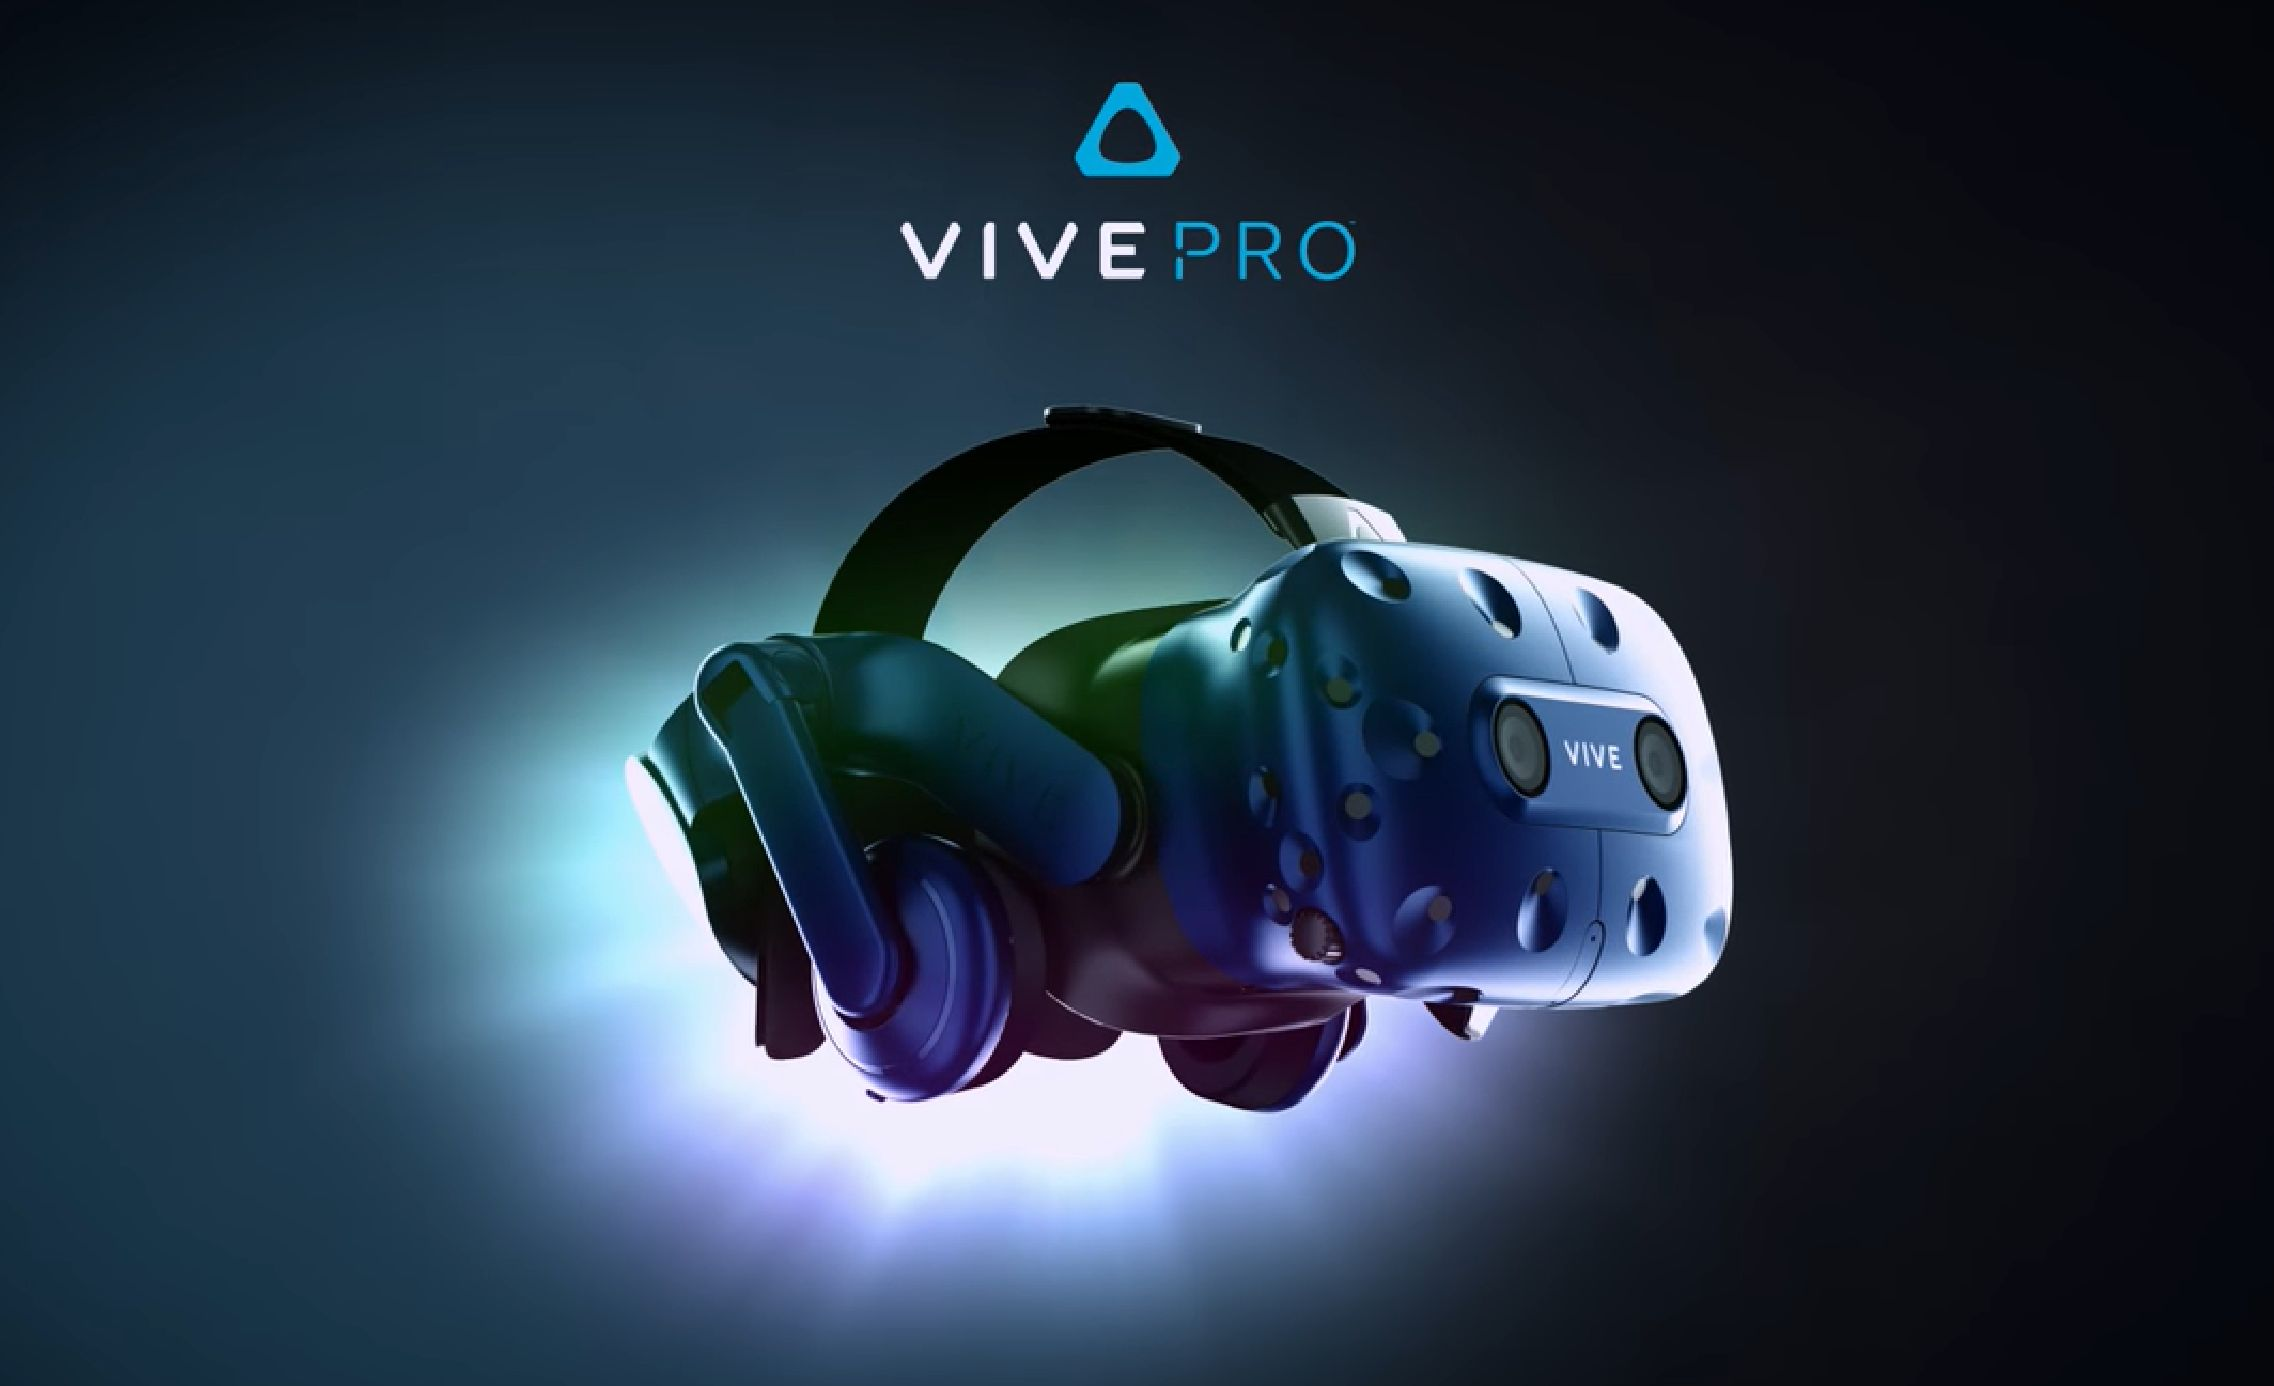 'VR is Not Dying' Claims Company Selling VR Products